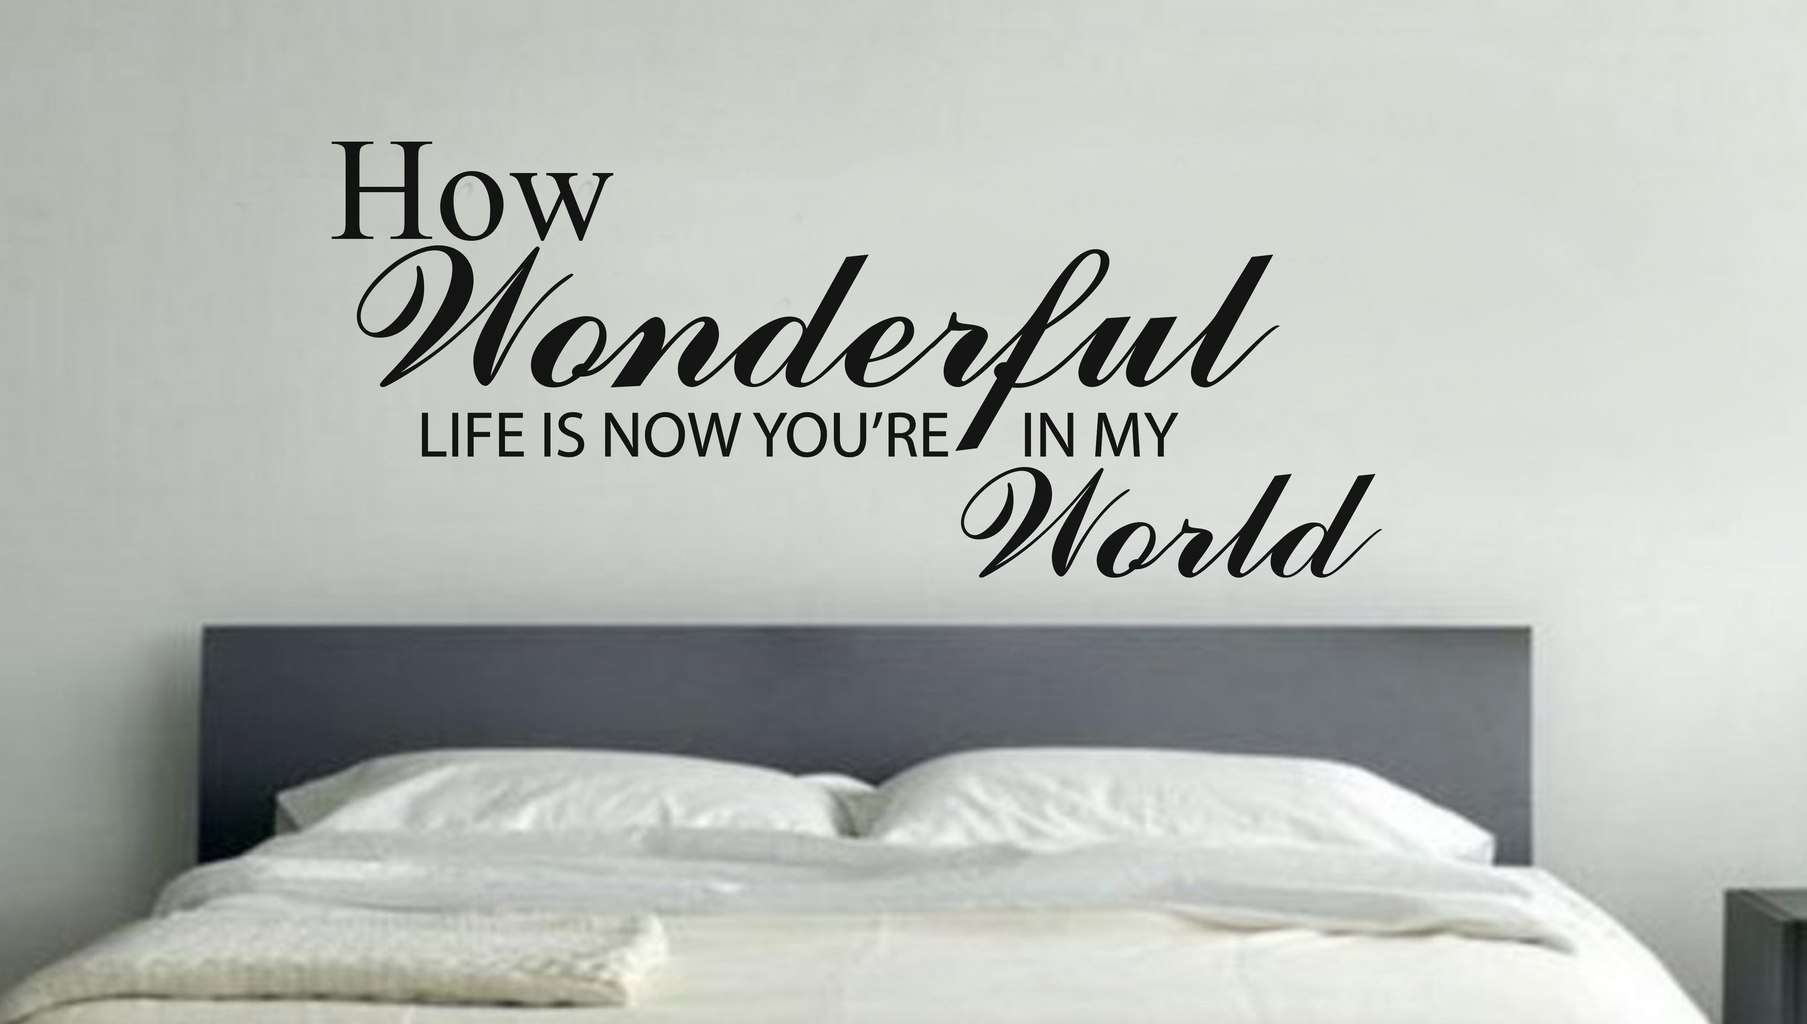 Wonderful Life Wall Art Decal Sticker pertaining to Wonderful World Wall Decor (Image 24 of 30)